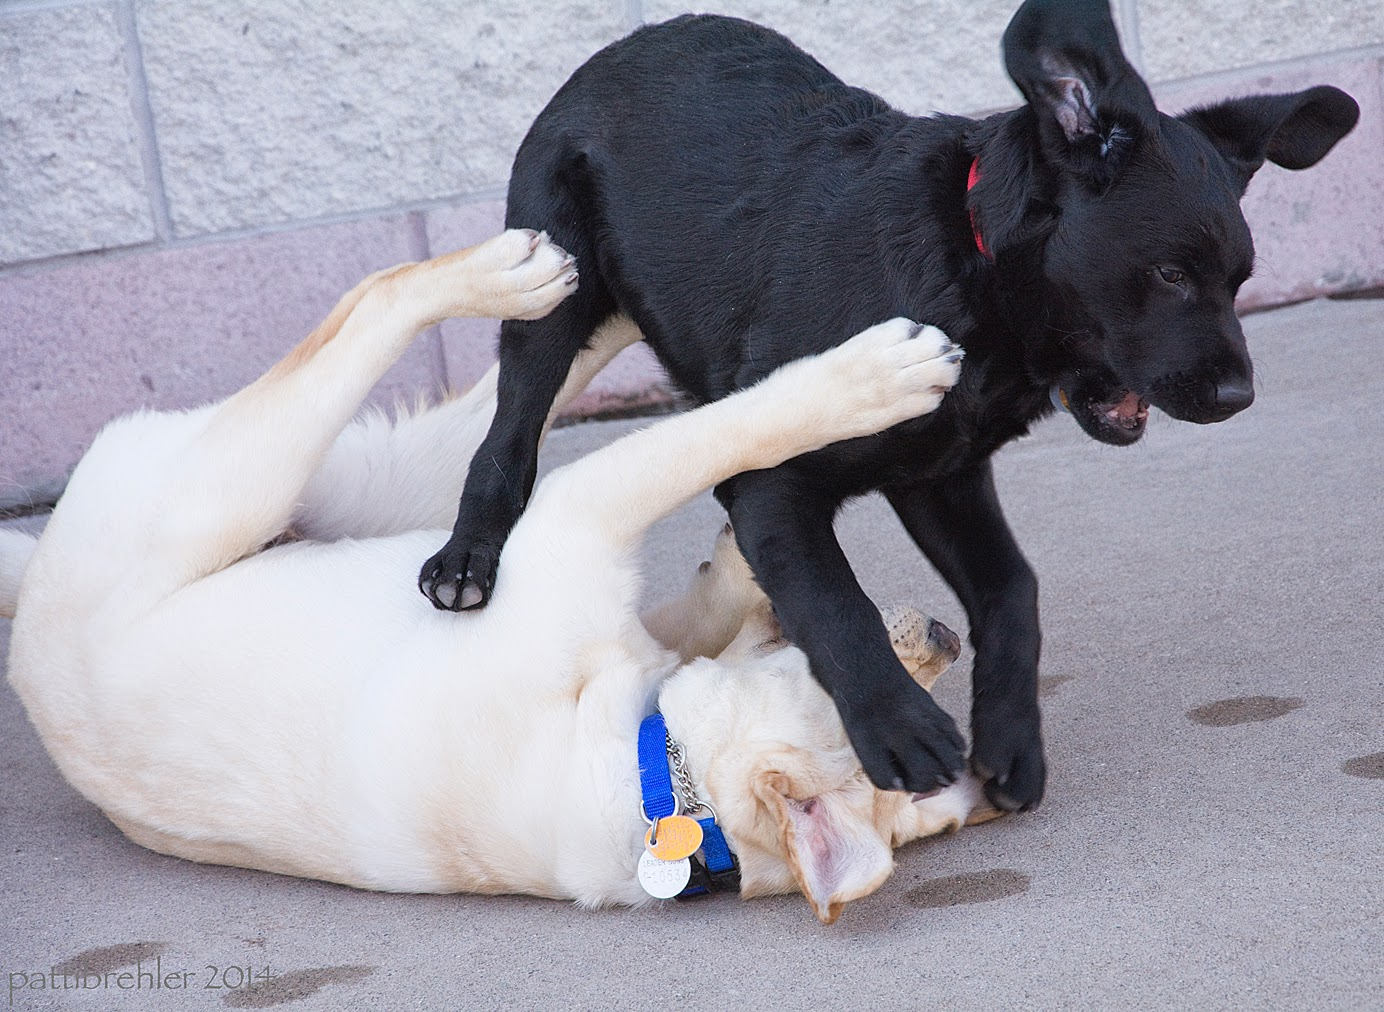 A yellow lab puppy is on its back on the cement with its legs in the air. A black lab puppy is jumping over the yellow lab, his right front paw is smashing the yellow lab's face. The black lab's ears are flying!